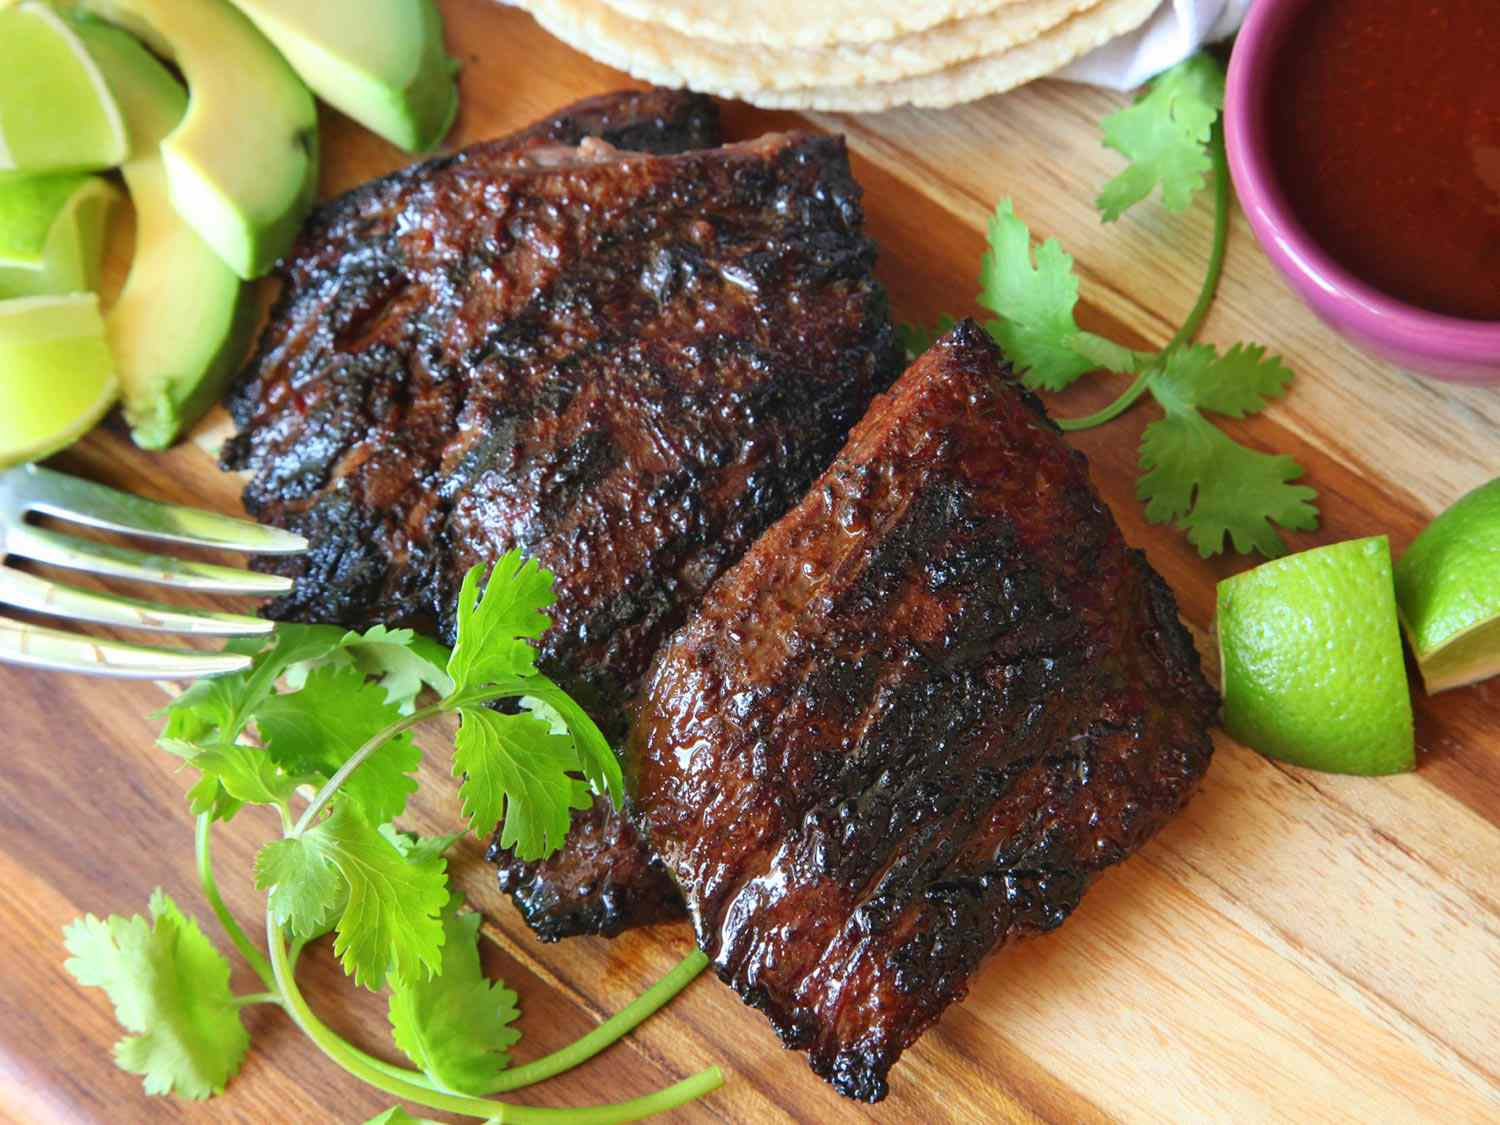 Whole grilled carne asada on a wooden cutting board with garnishes before being sliced.